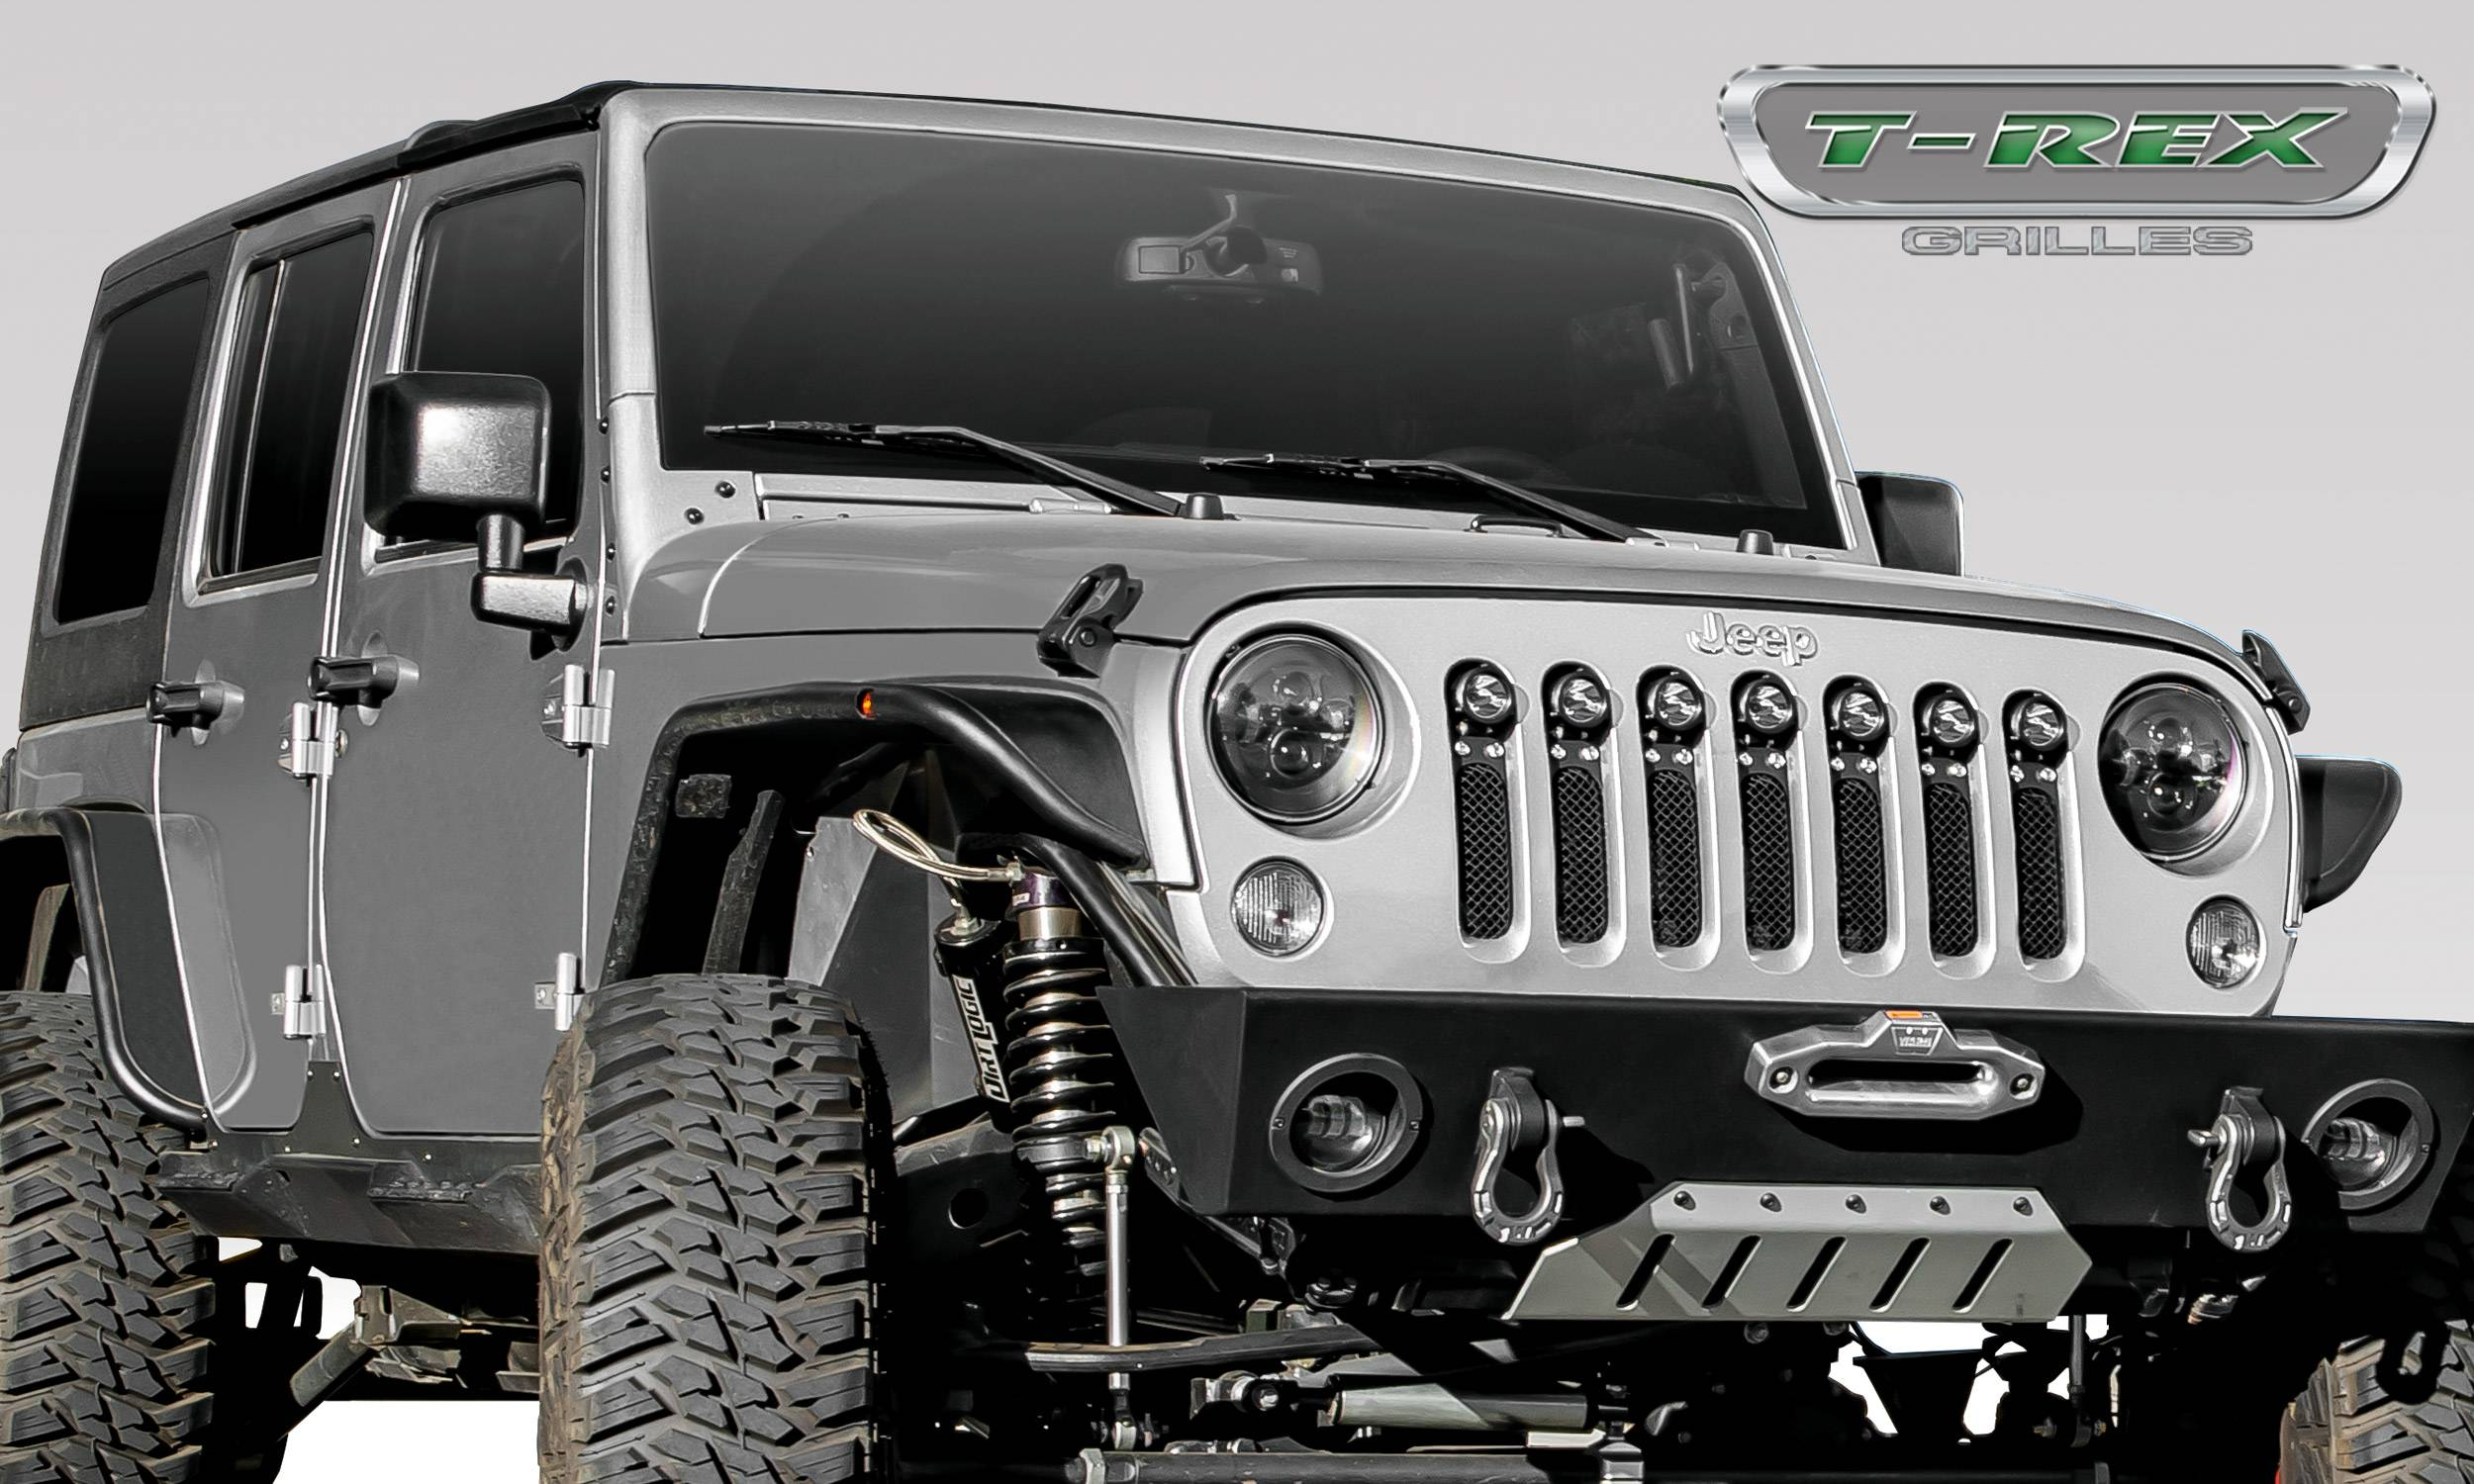 """T-REX Grilles - Jeep Wrangler JK - Torch Series w/ (7) 2"""" Round LED Lights - 1 Piece Frame & Formed Wire Mesh - Insert  - Pt # 6314841"""